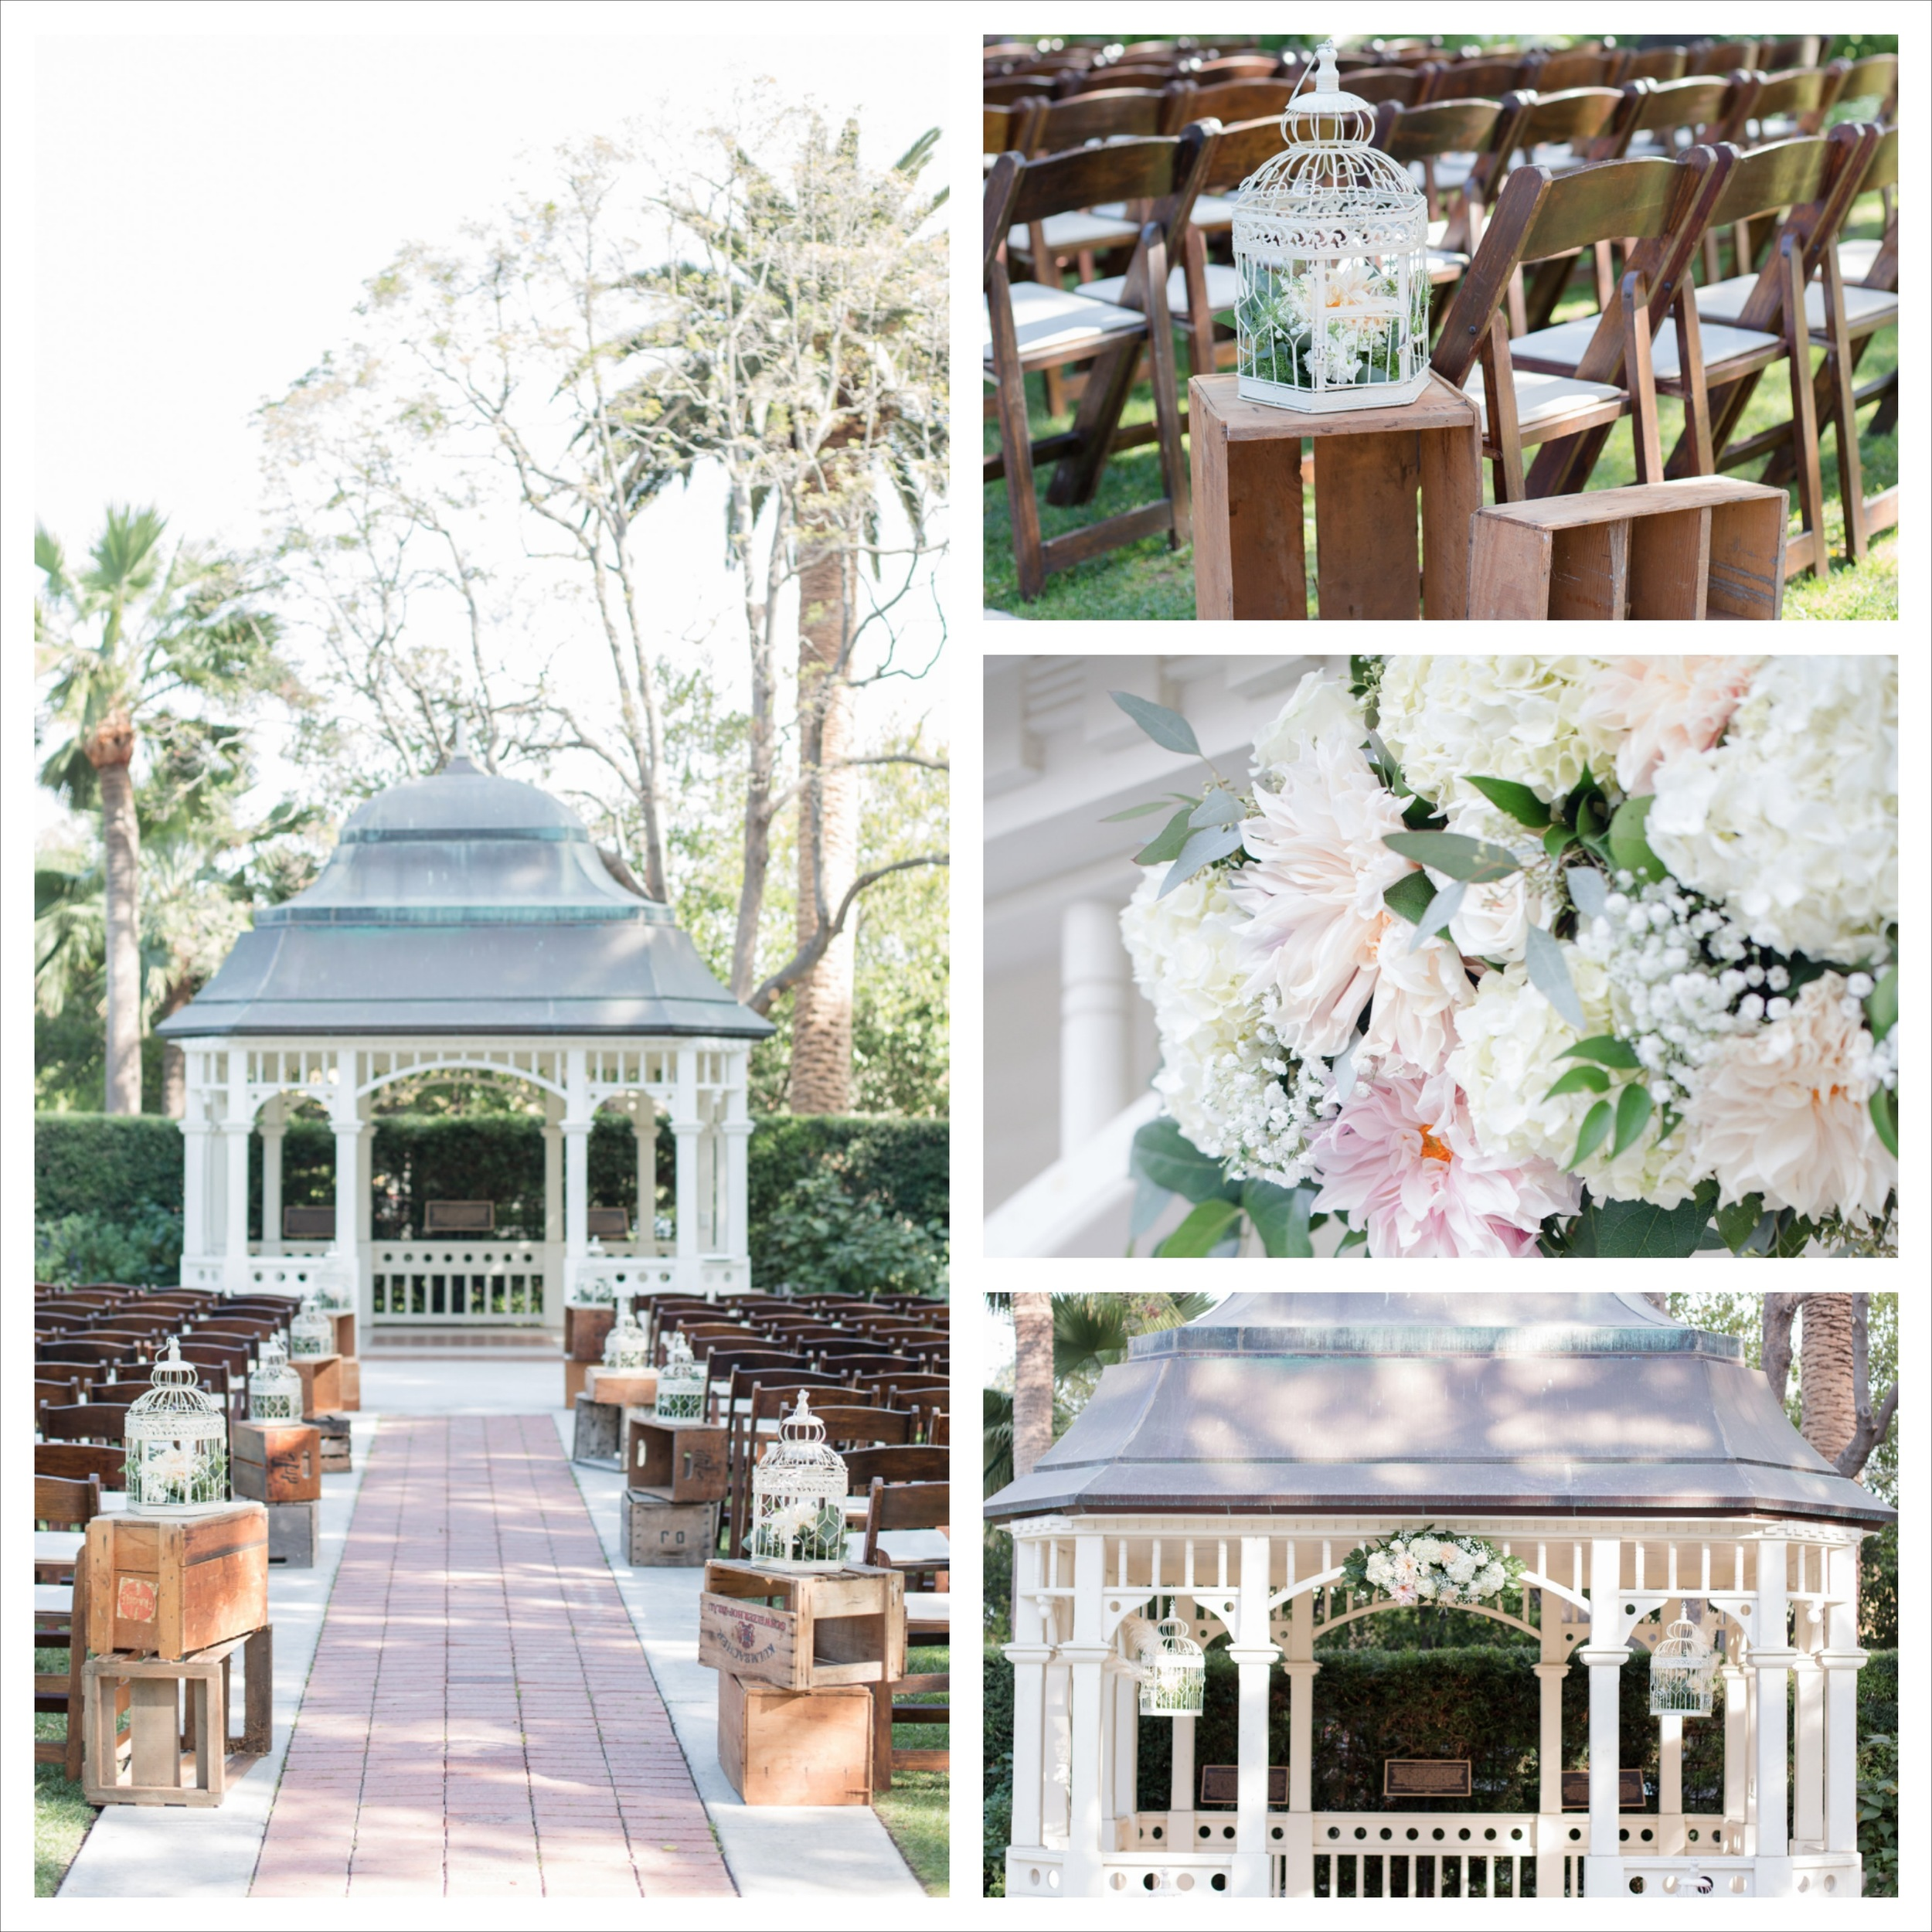 Vintage crates, birdcages and a gazebo worked so well together in this space.  It lent just the right amount of decor to set the tone for the vintage wedding the bride loved without breaking the floral budget.   Photo By:  Fortuna Photography   Venue:  Camarillo Ranch House